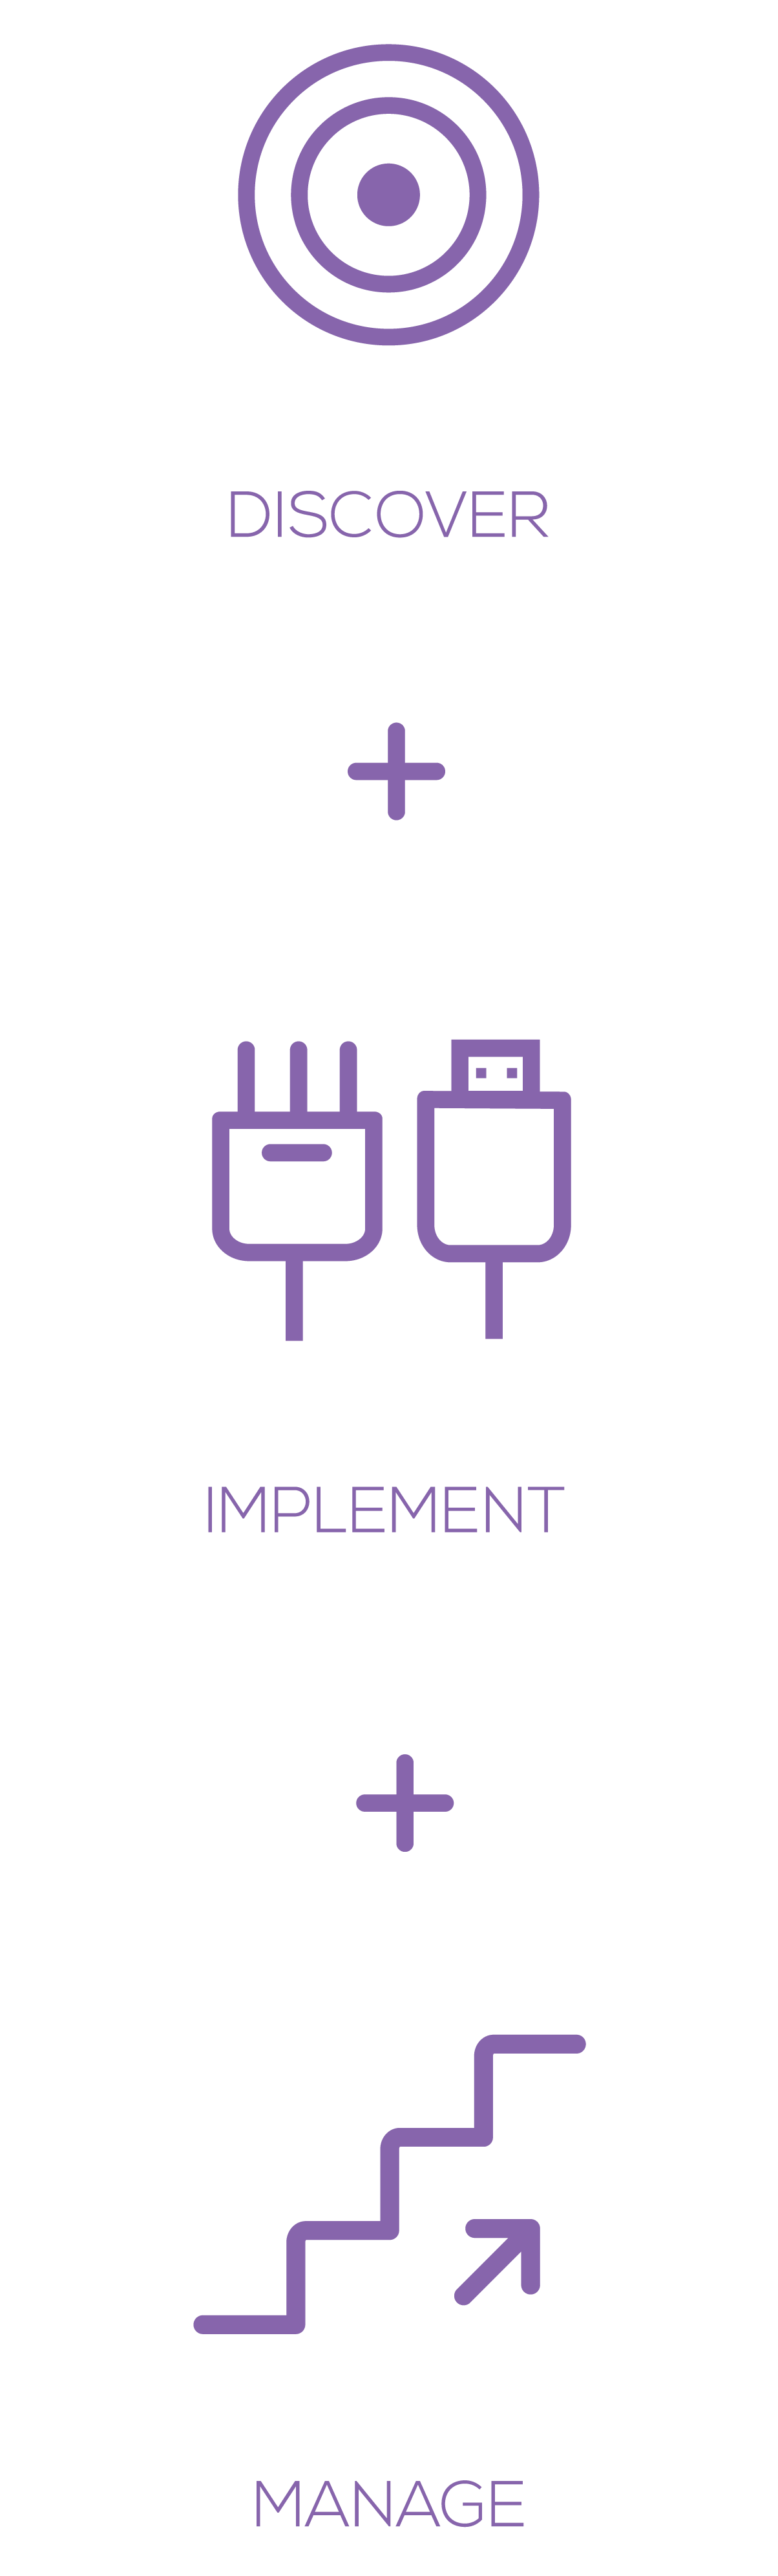 discover implement manage icon